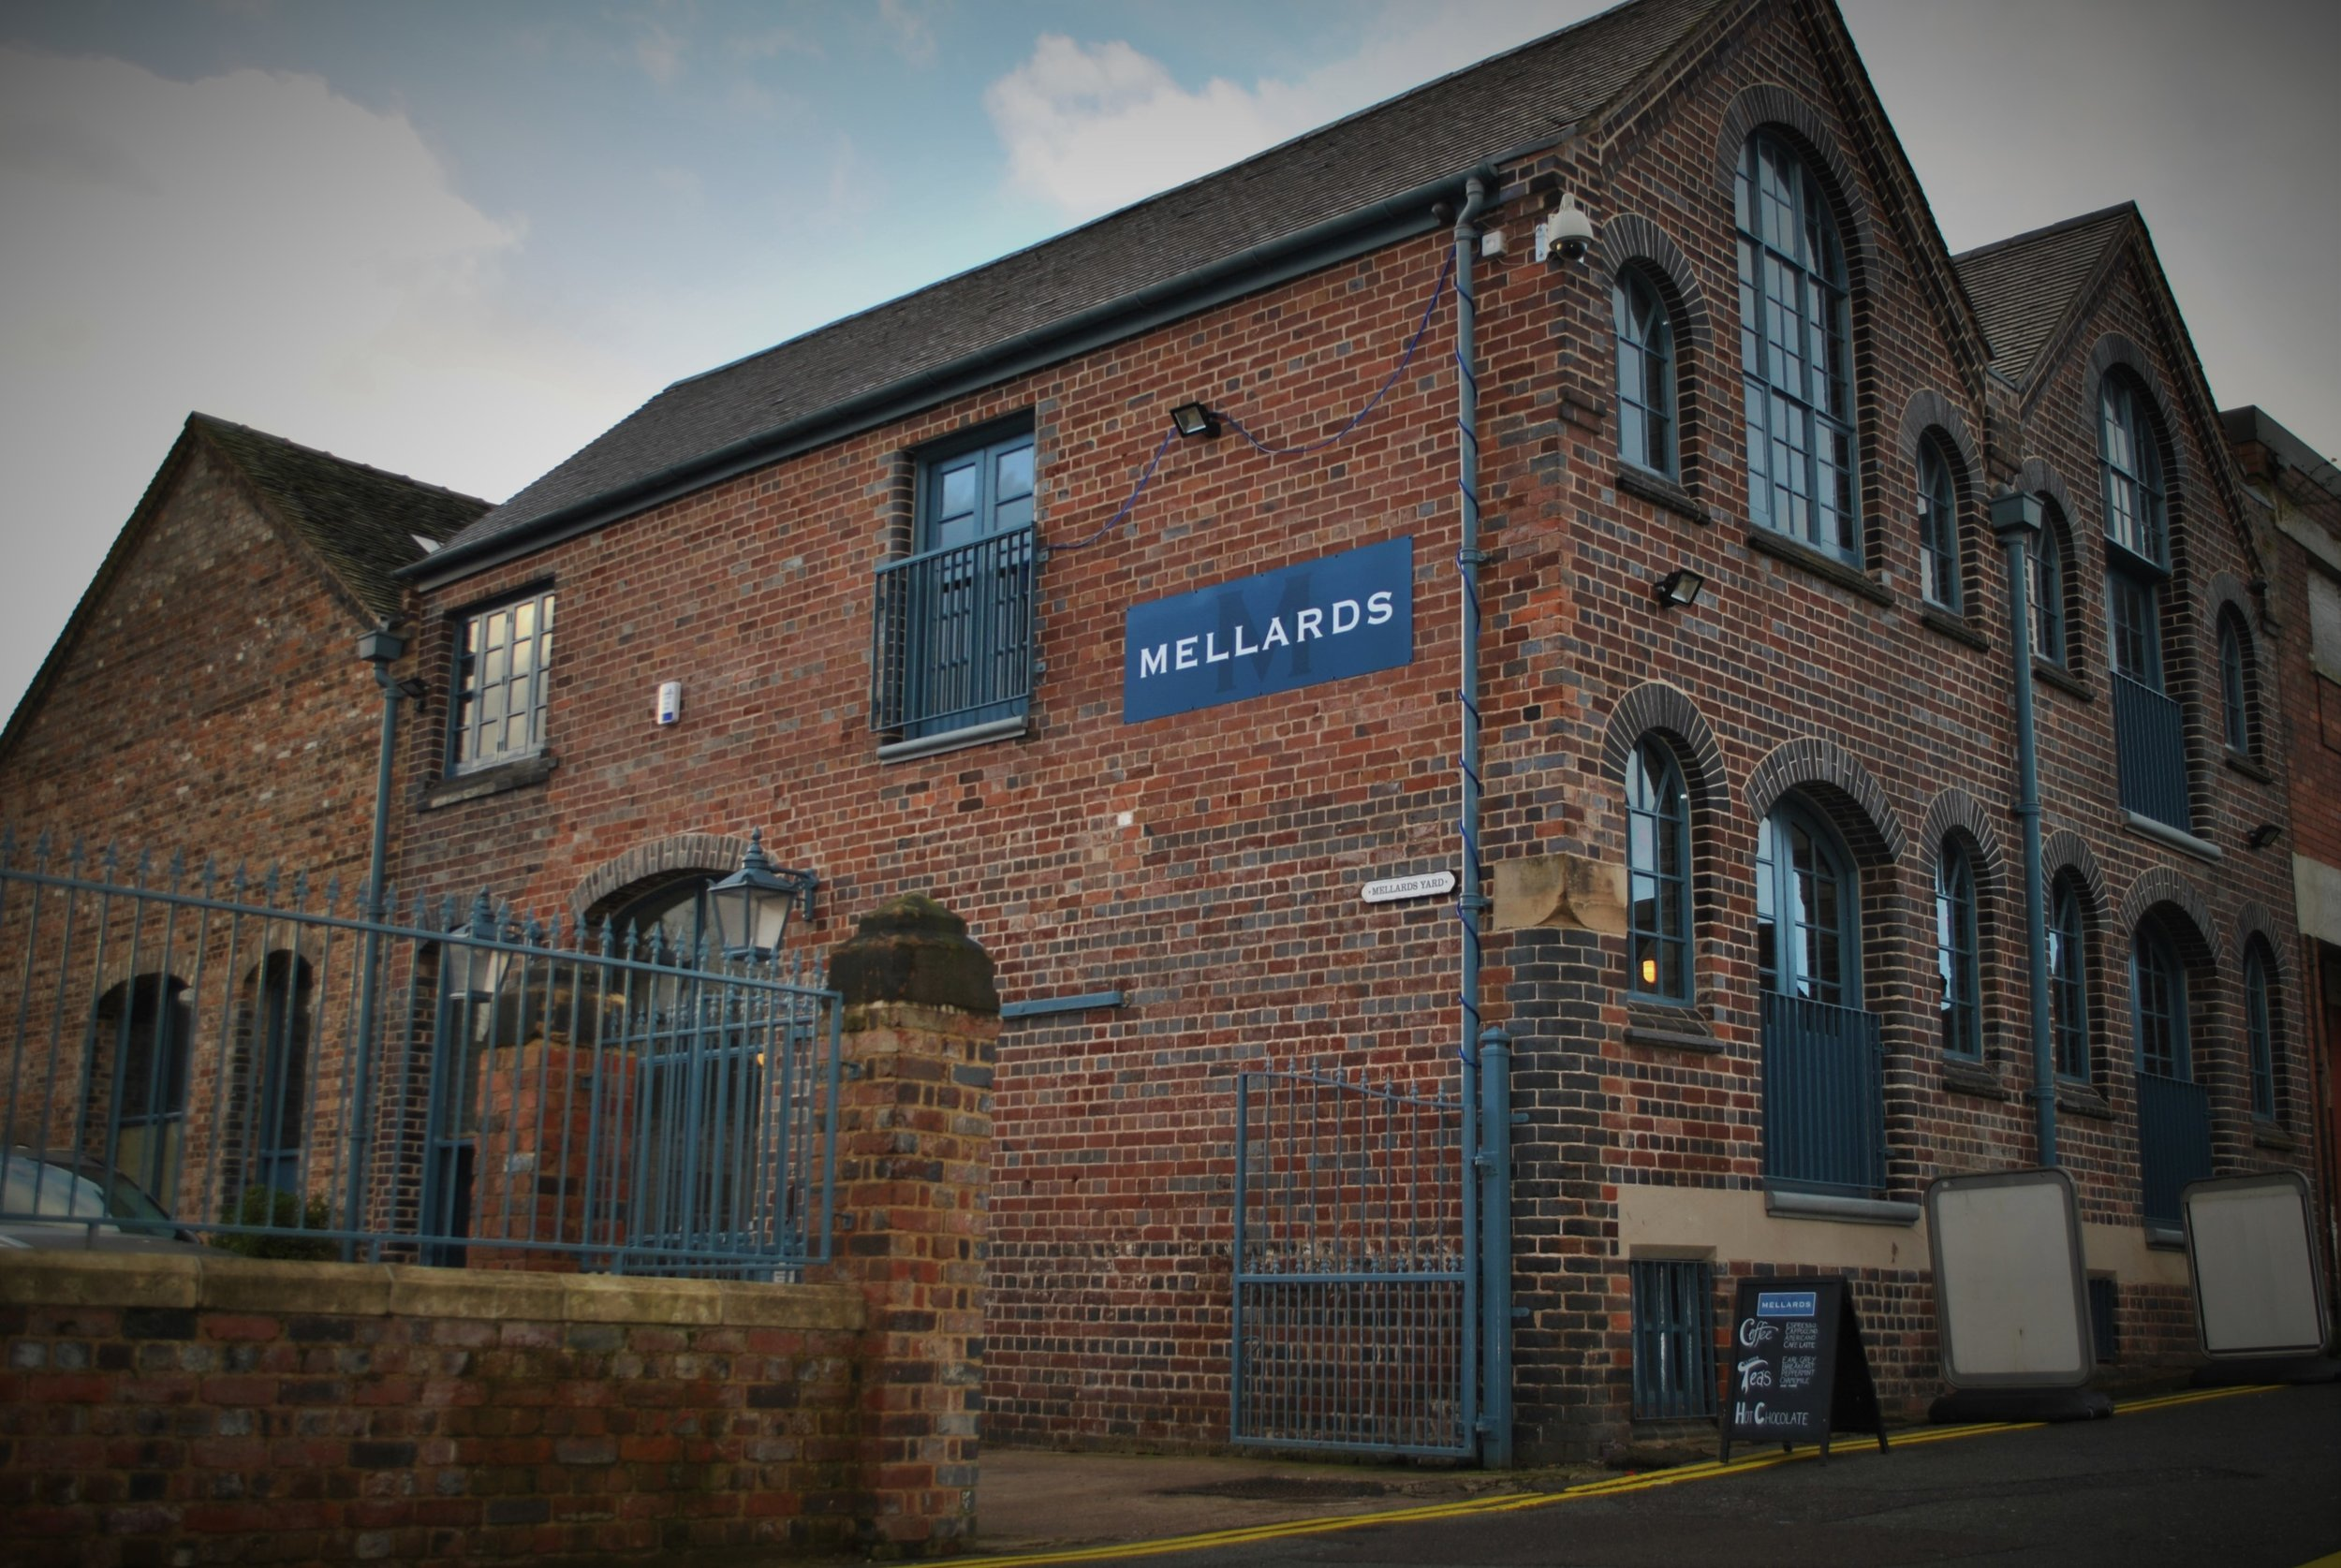 Mellards - Newcastle-under-Lyme